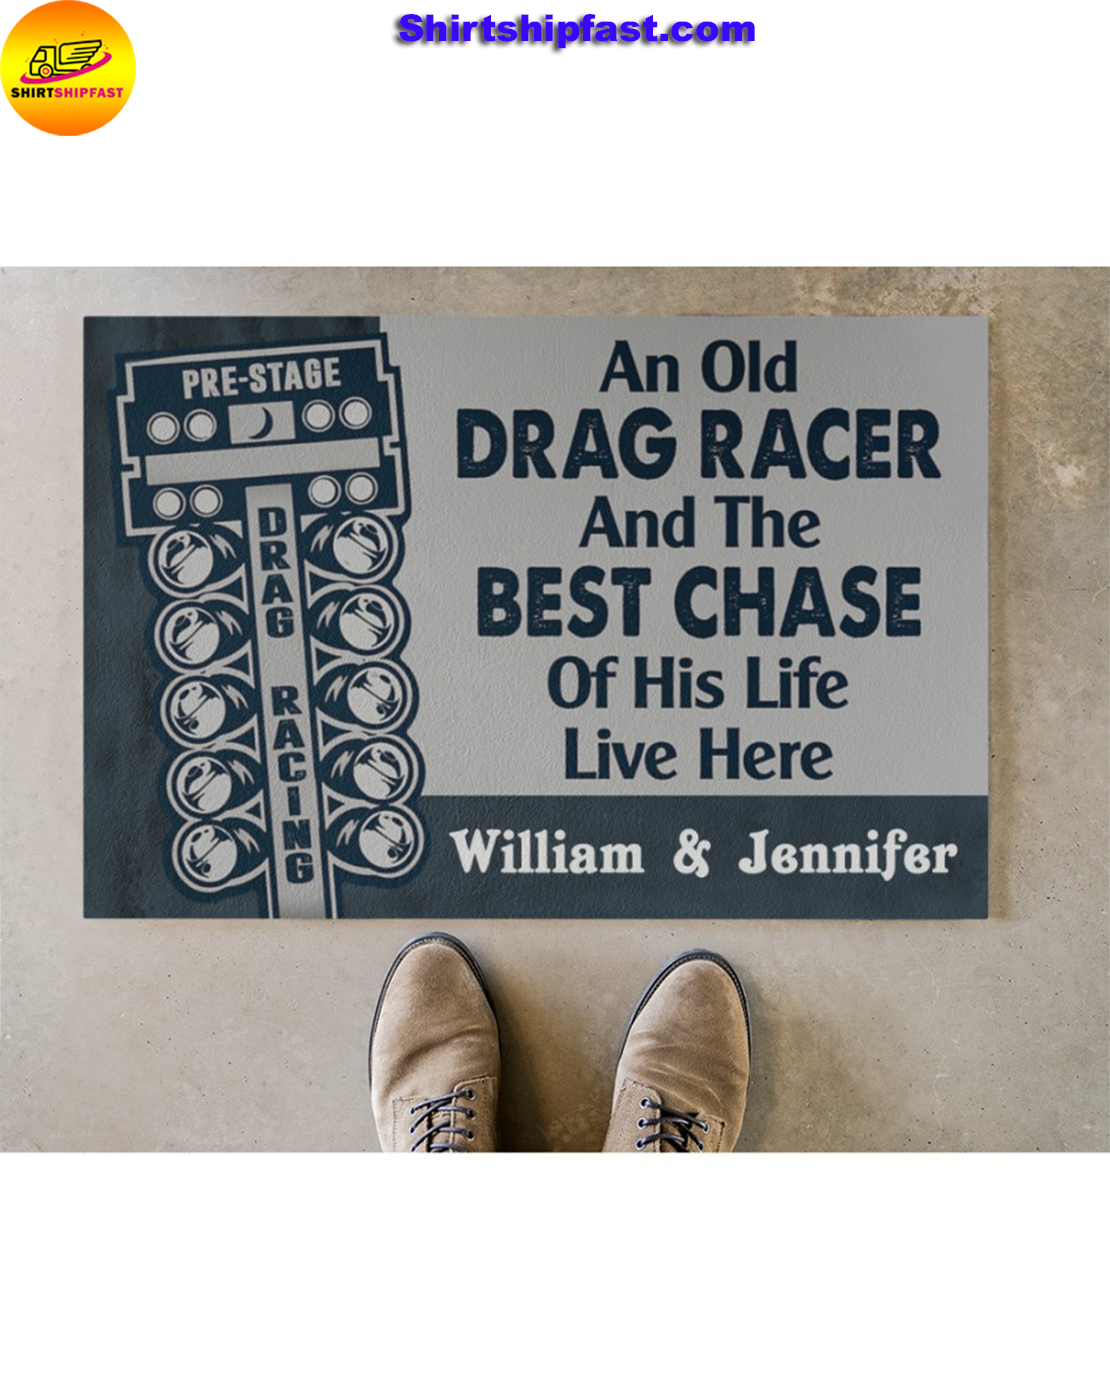 Personalized An old drag racer and the best chase of his life live here doormat - Picture 1